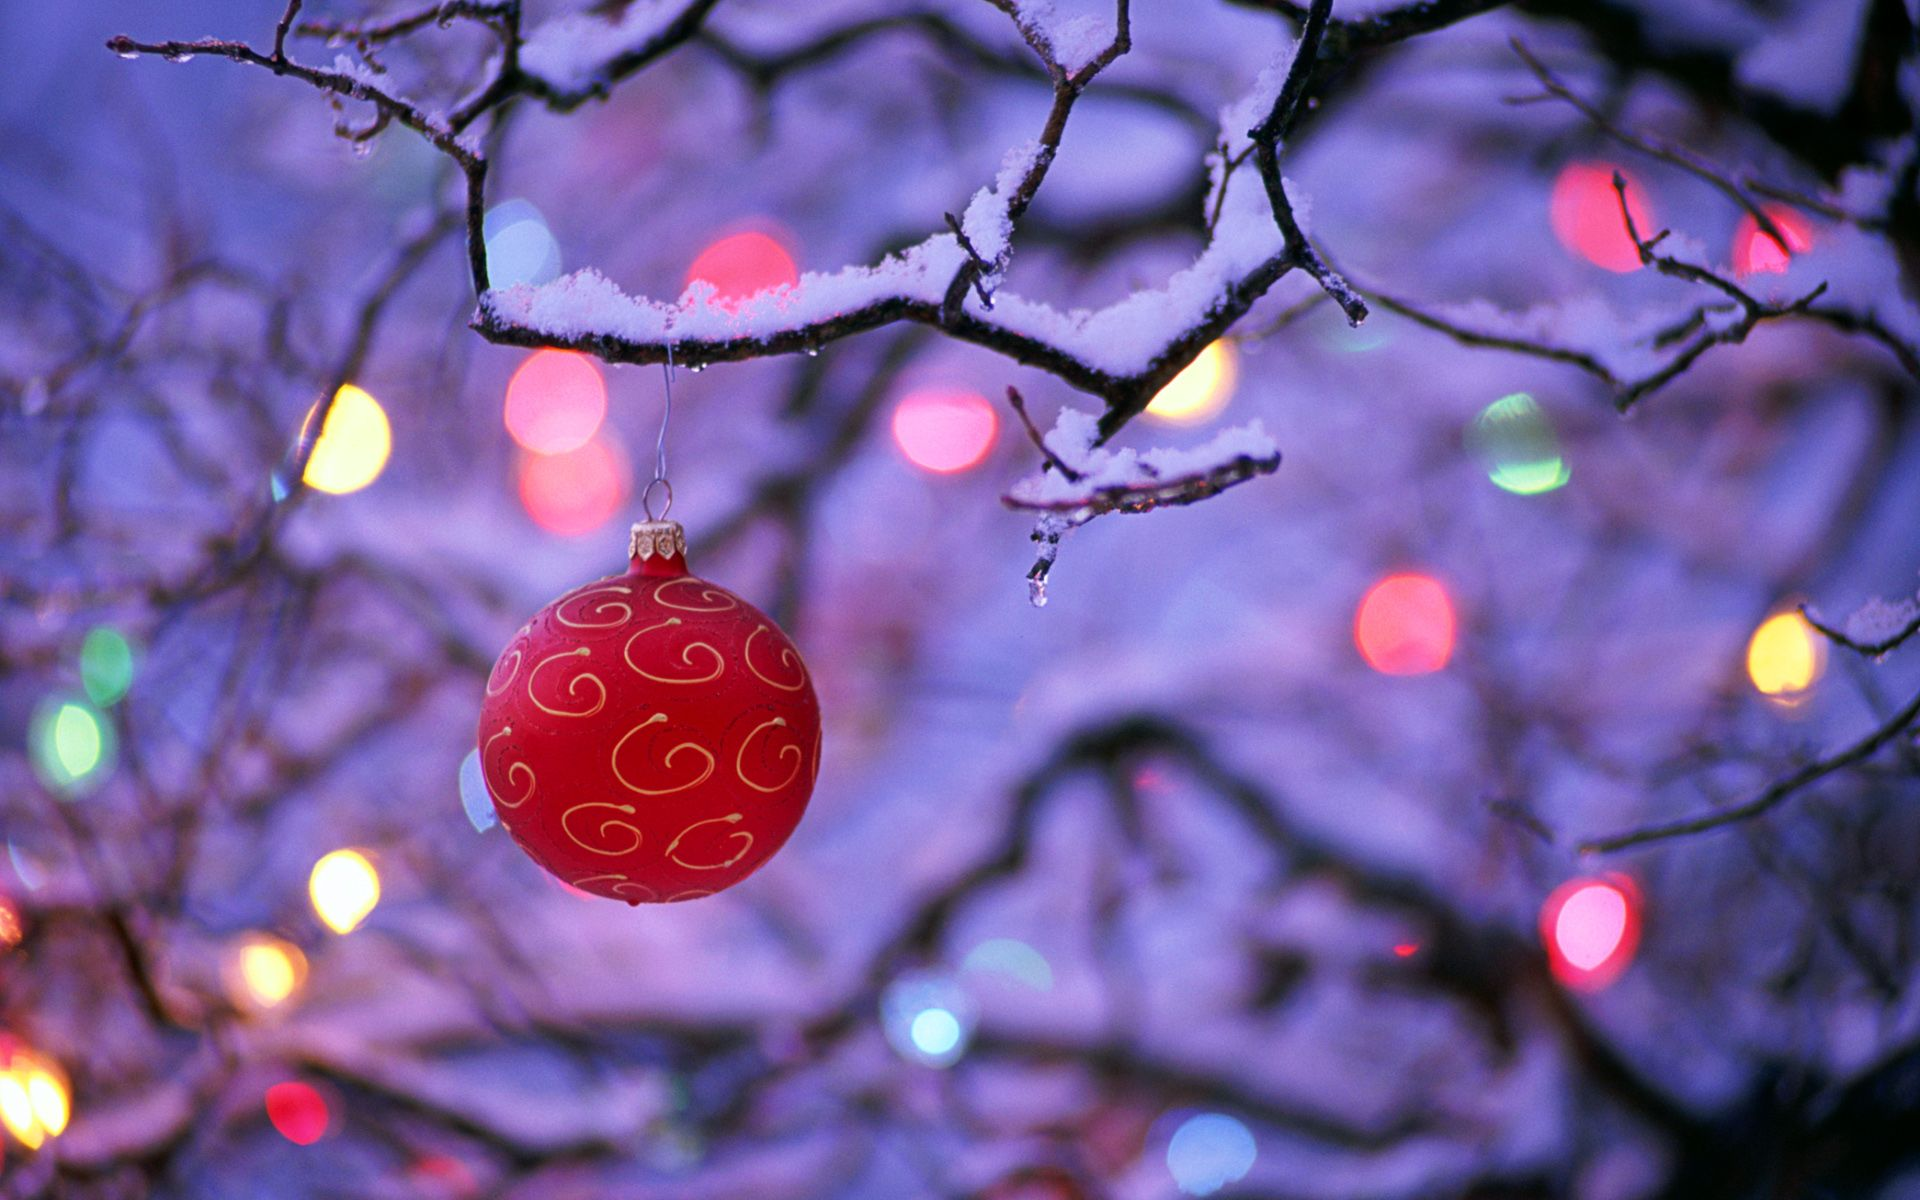 Winter Christmas Wallpaper Picture Free Download